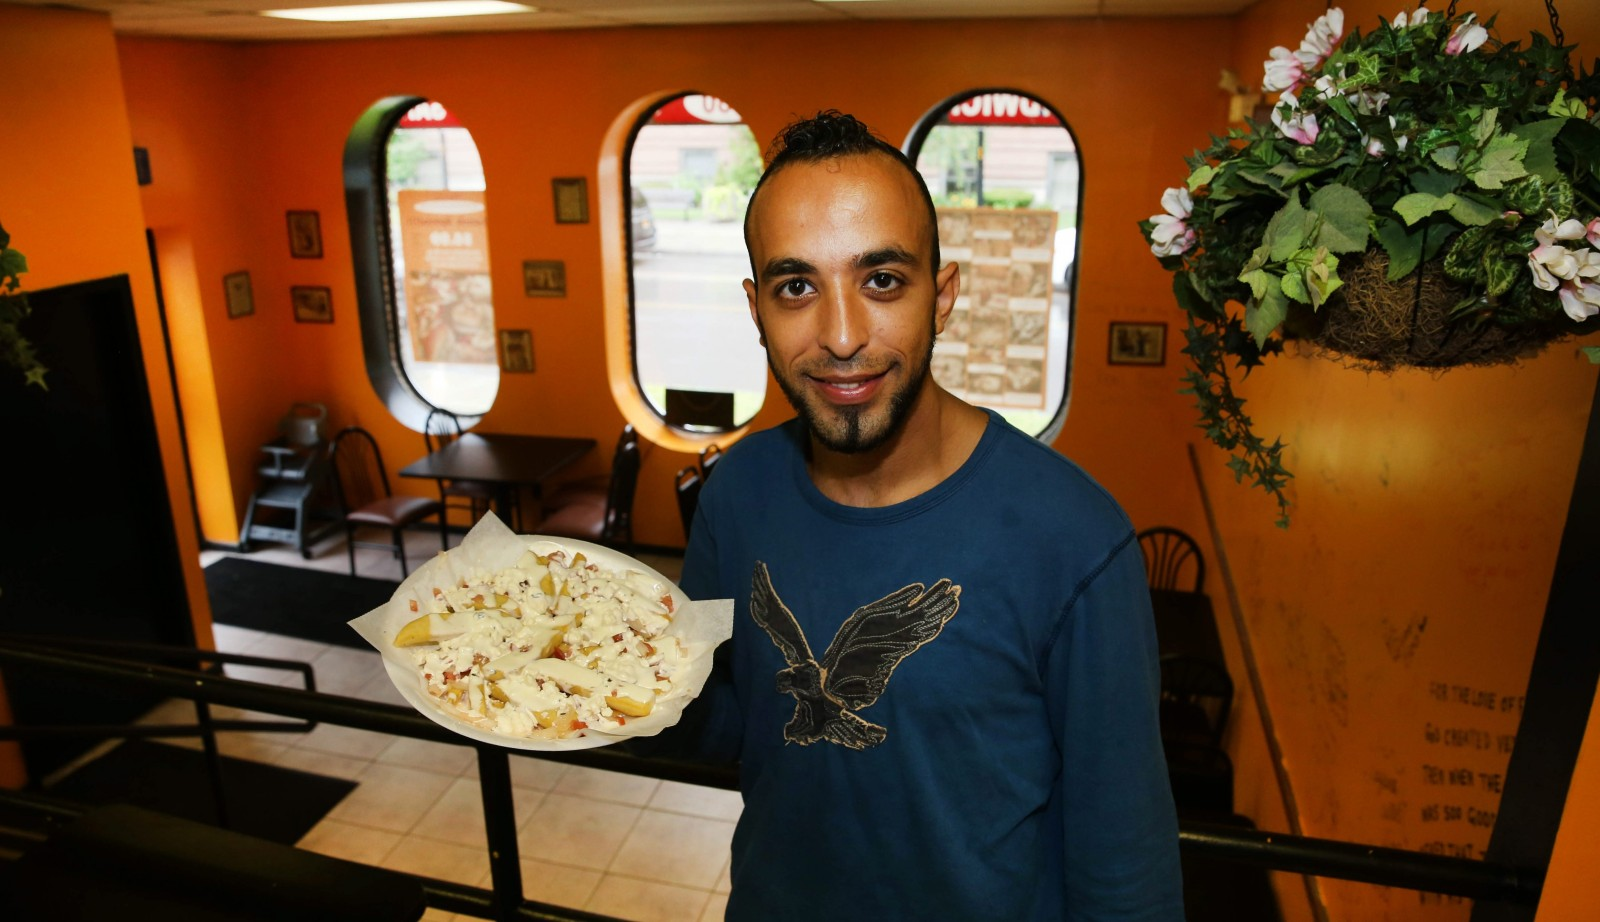 Manager Antewan Fanous presents Venus Mediterranean's popular Greek fries, made with feta cheese, Greek dressing and a housemade garlic sauce. (Sharon Cantillon/Buffalo News)